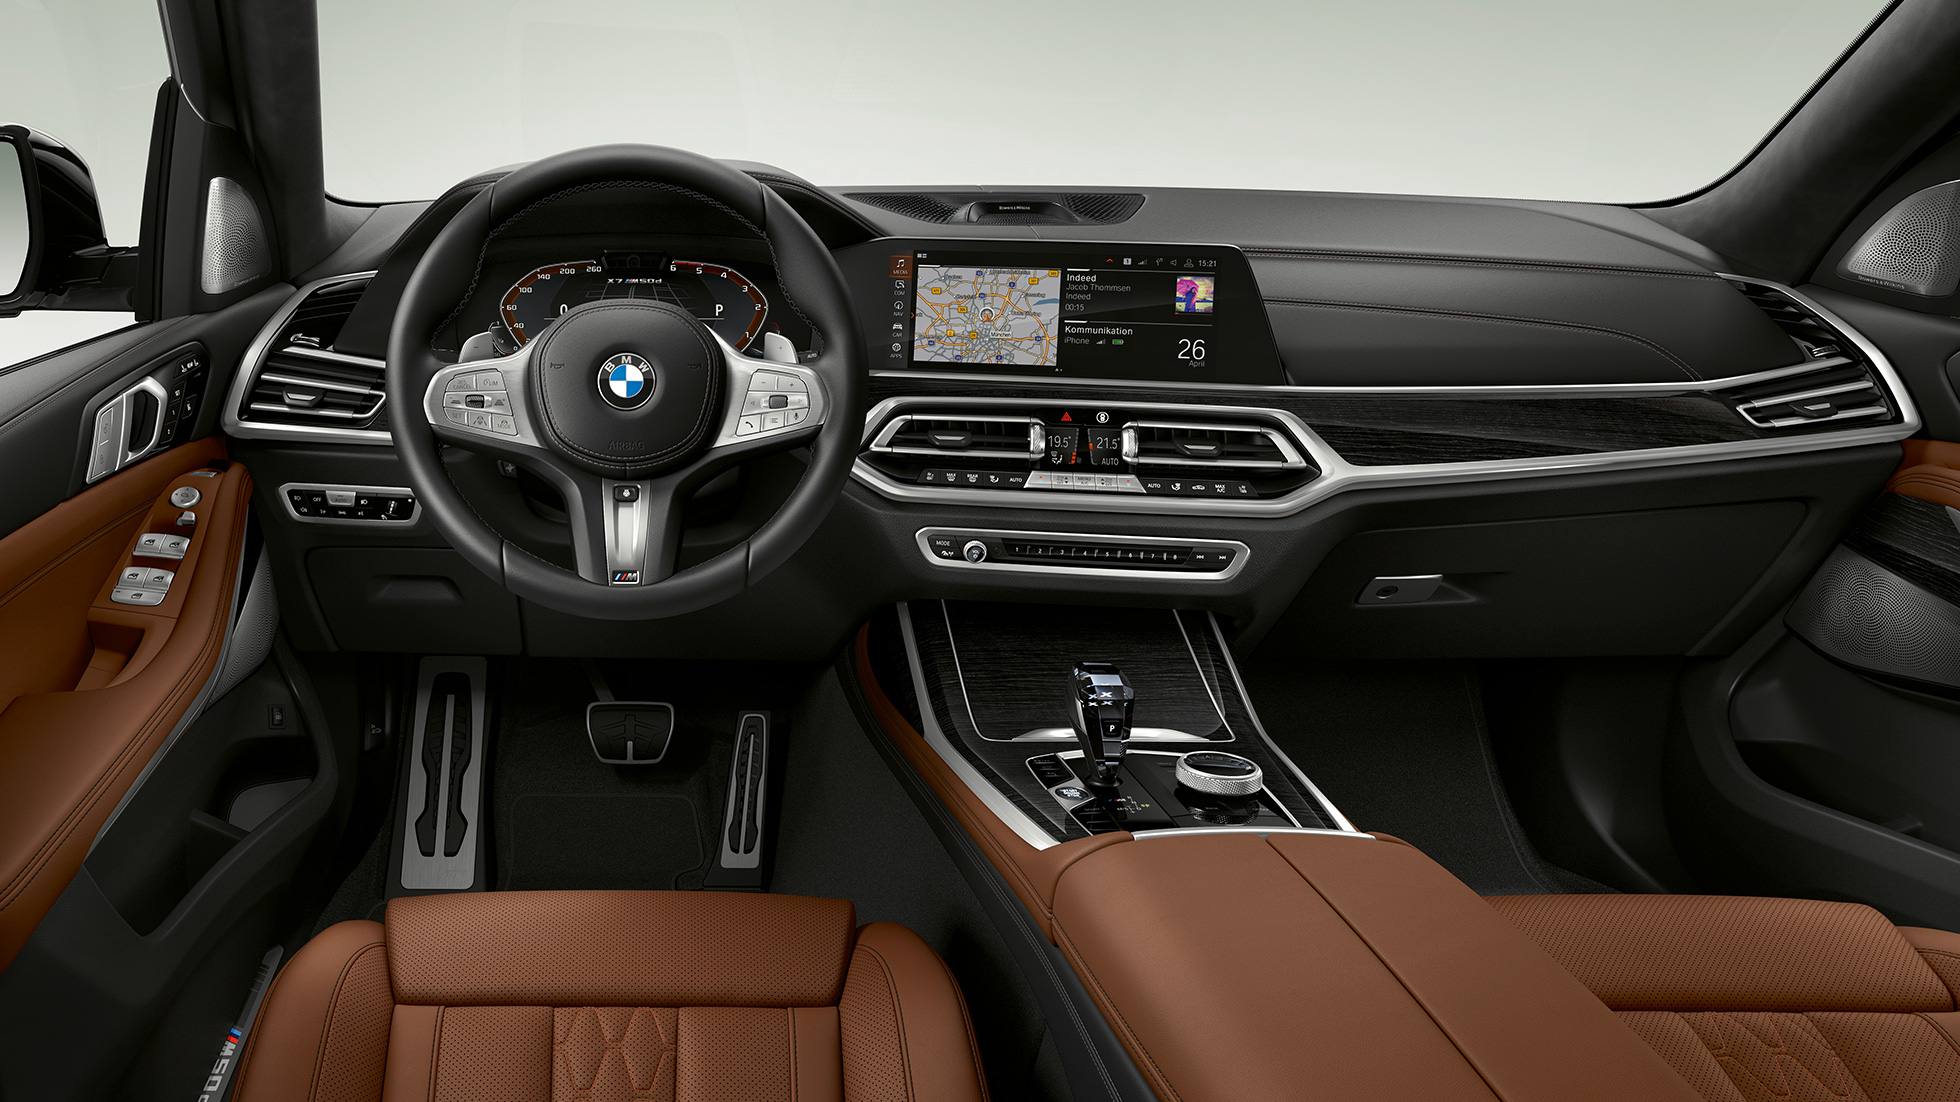 Frontal close-up of the driver's cockpit of the BMW X7 with BMW X7 M50d features